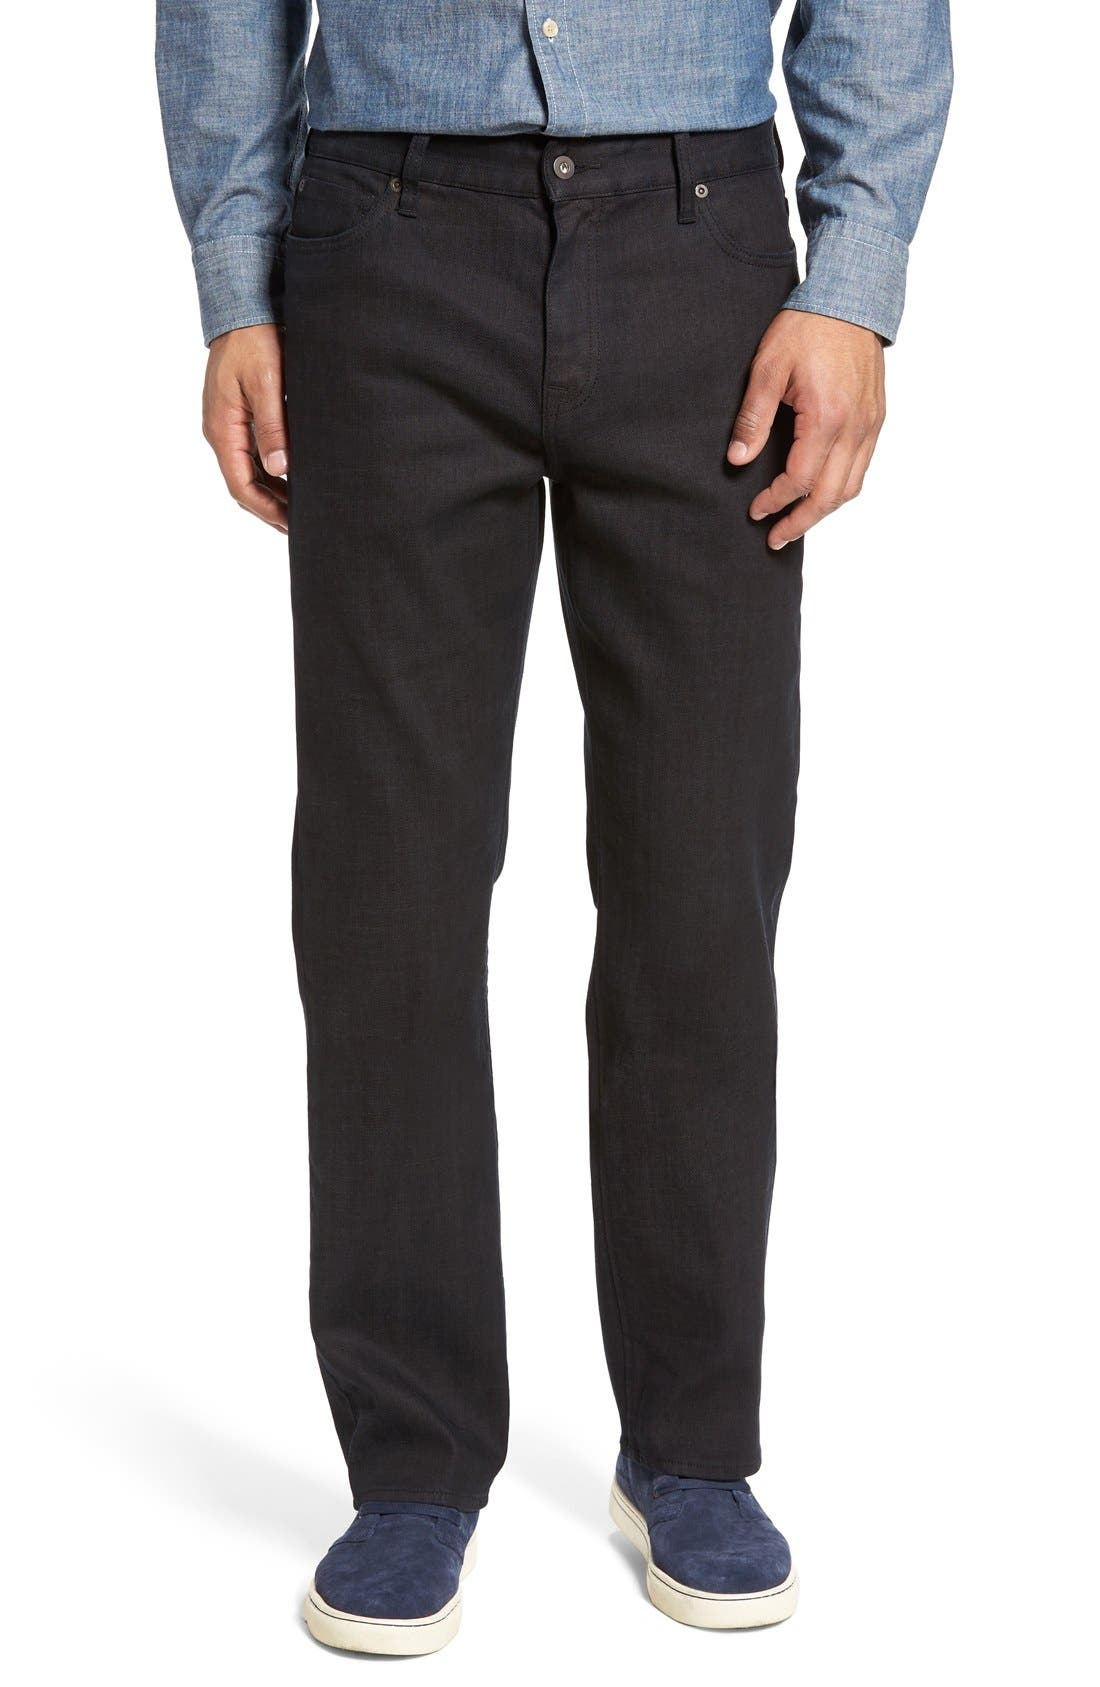 Greenwood Relaxed Fit Jeans,                             Main thumbnail 1, color,